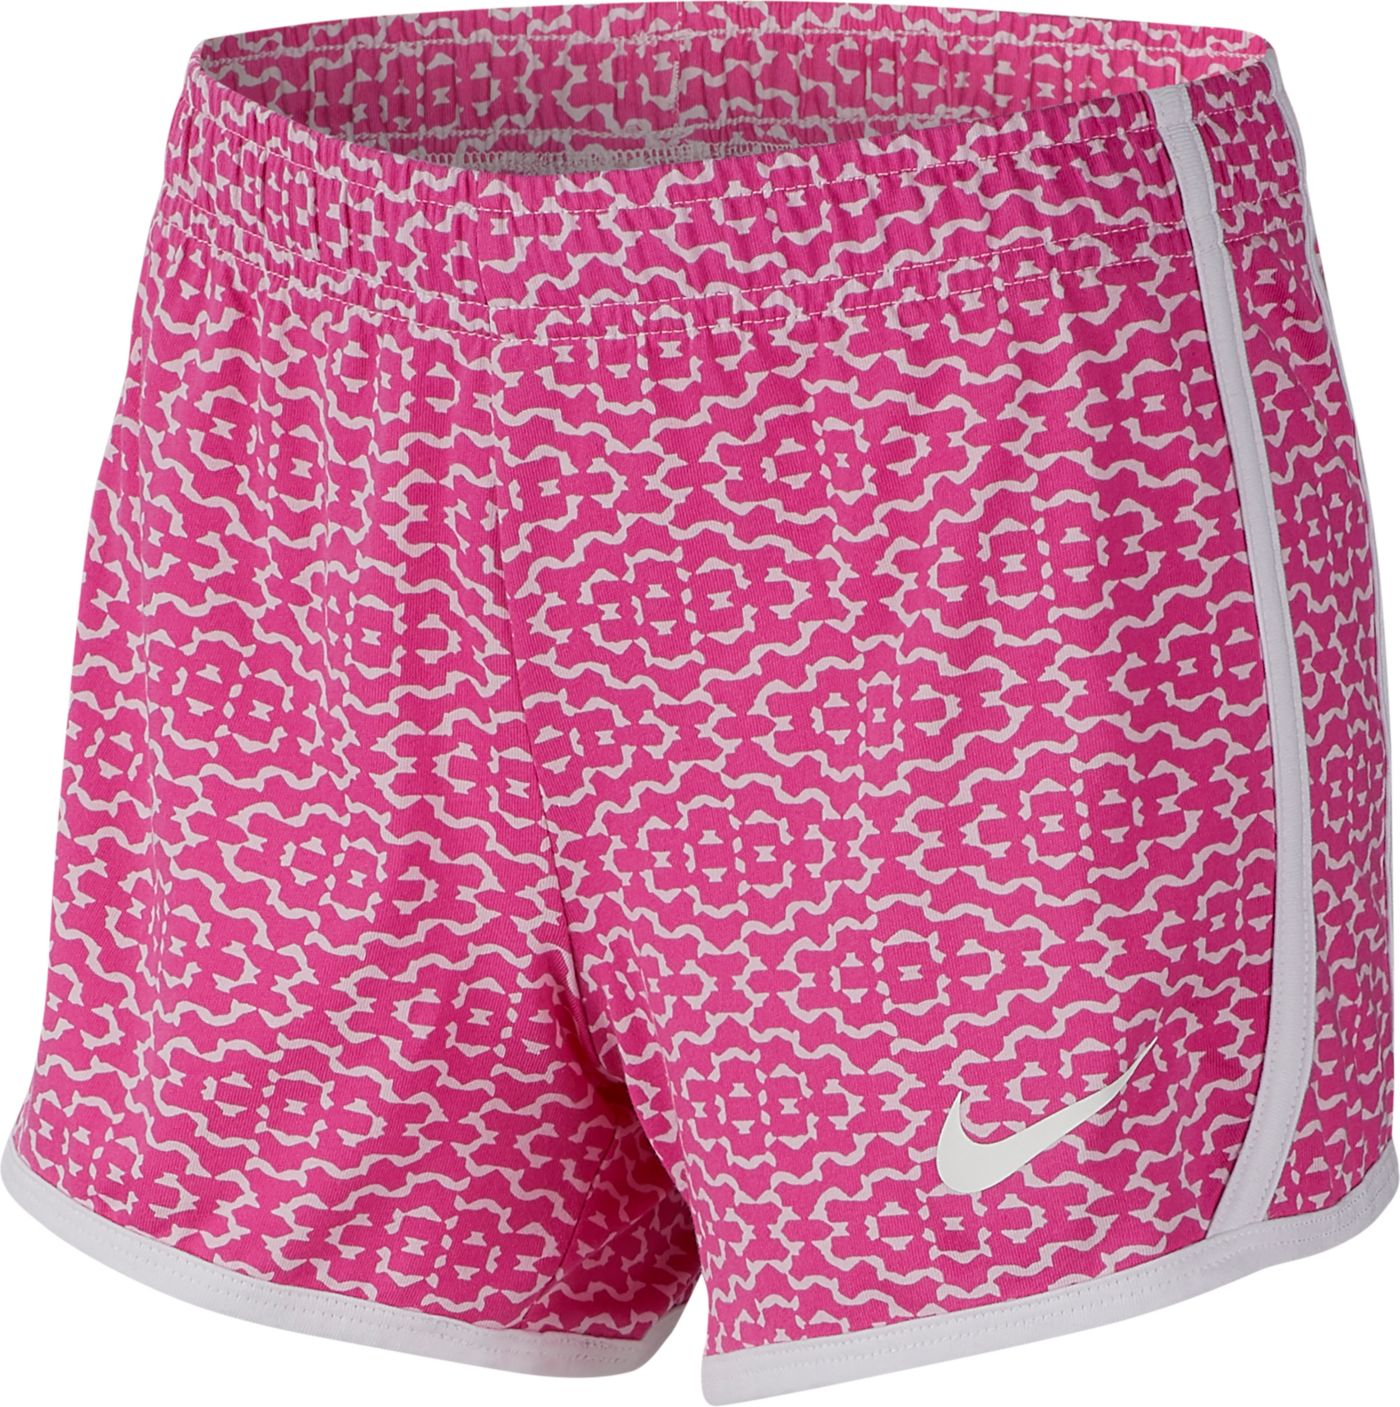 Nike Girls' Sportswear Printed Jersey Shorts